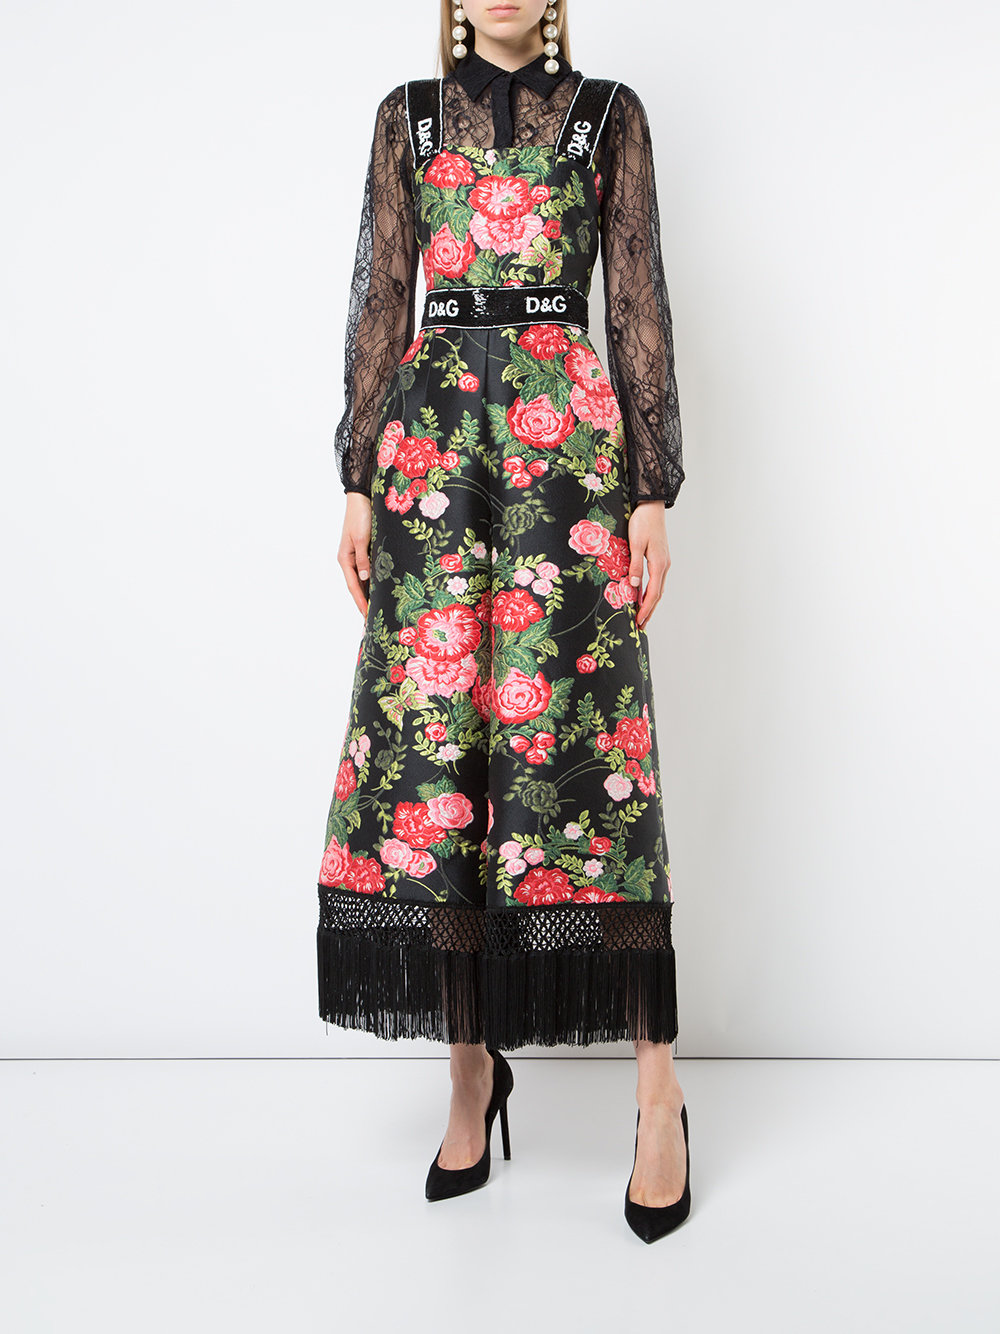 Dolce & Gabbana Tassel Rose Print Jumpsuit - How to Style a Jumpsuit - Source Farfetch